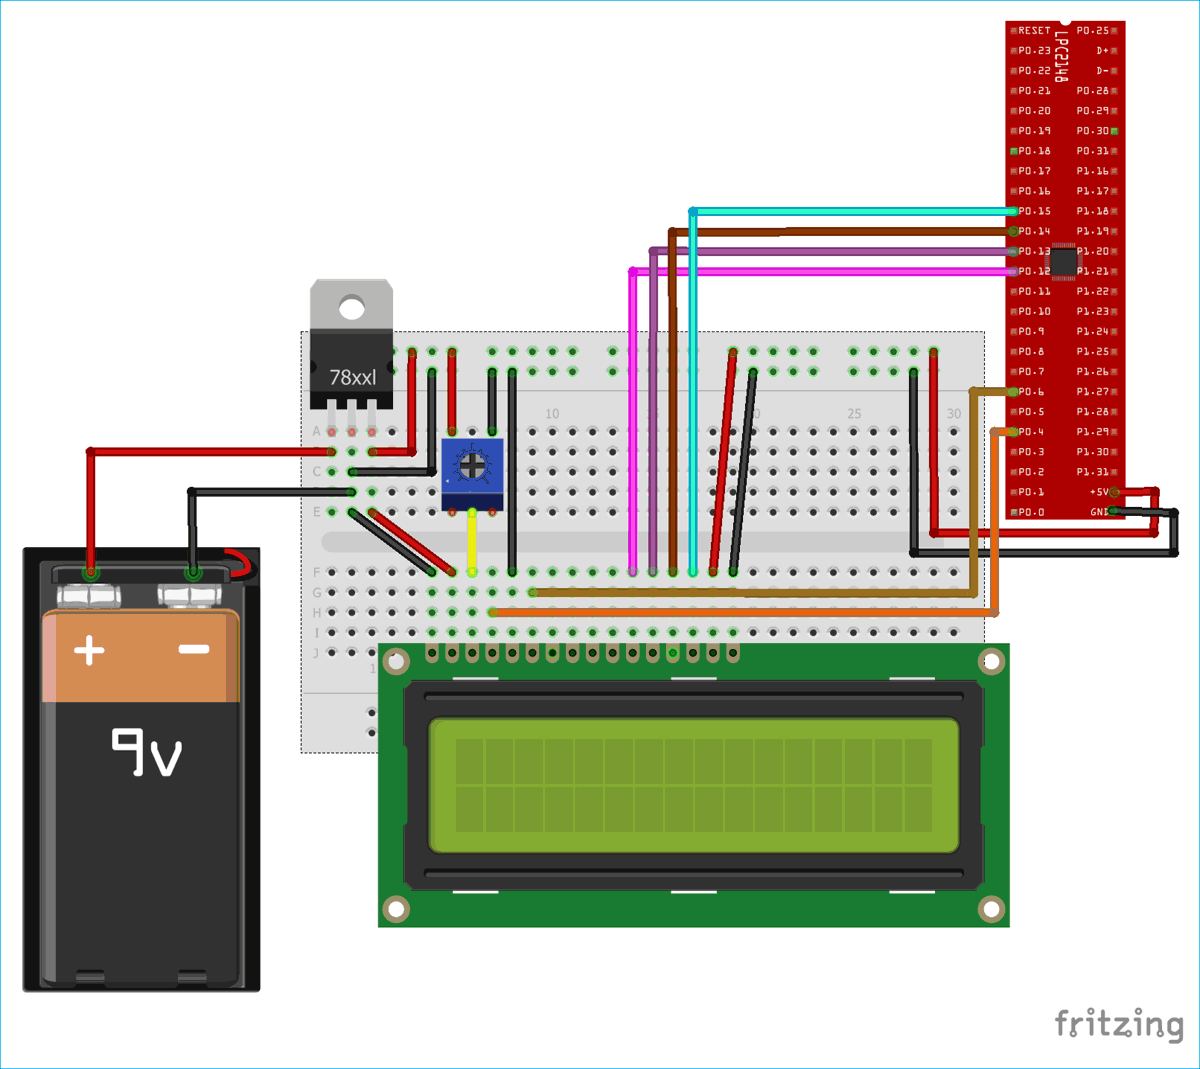 Circuit Diagram for Interfacing 16x2 LCD with ARM7-LPC2148 in 4-Bit Mode